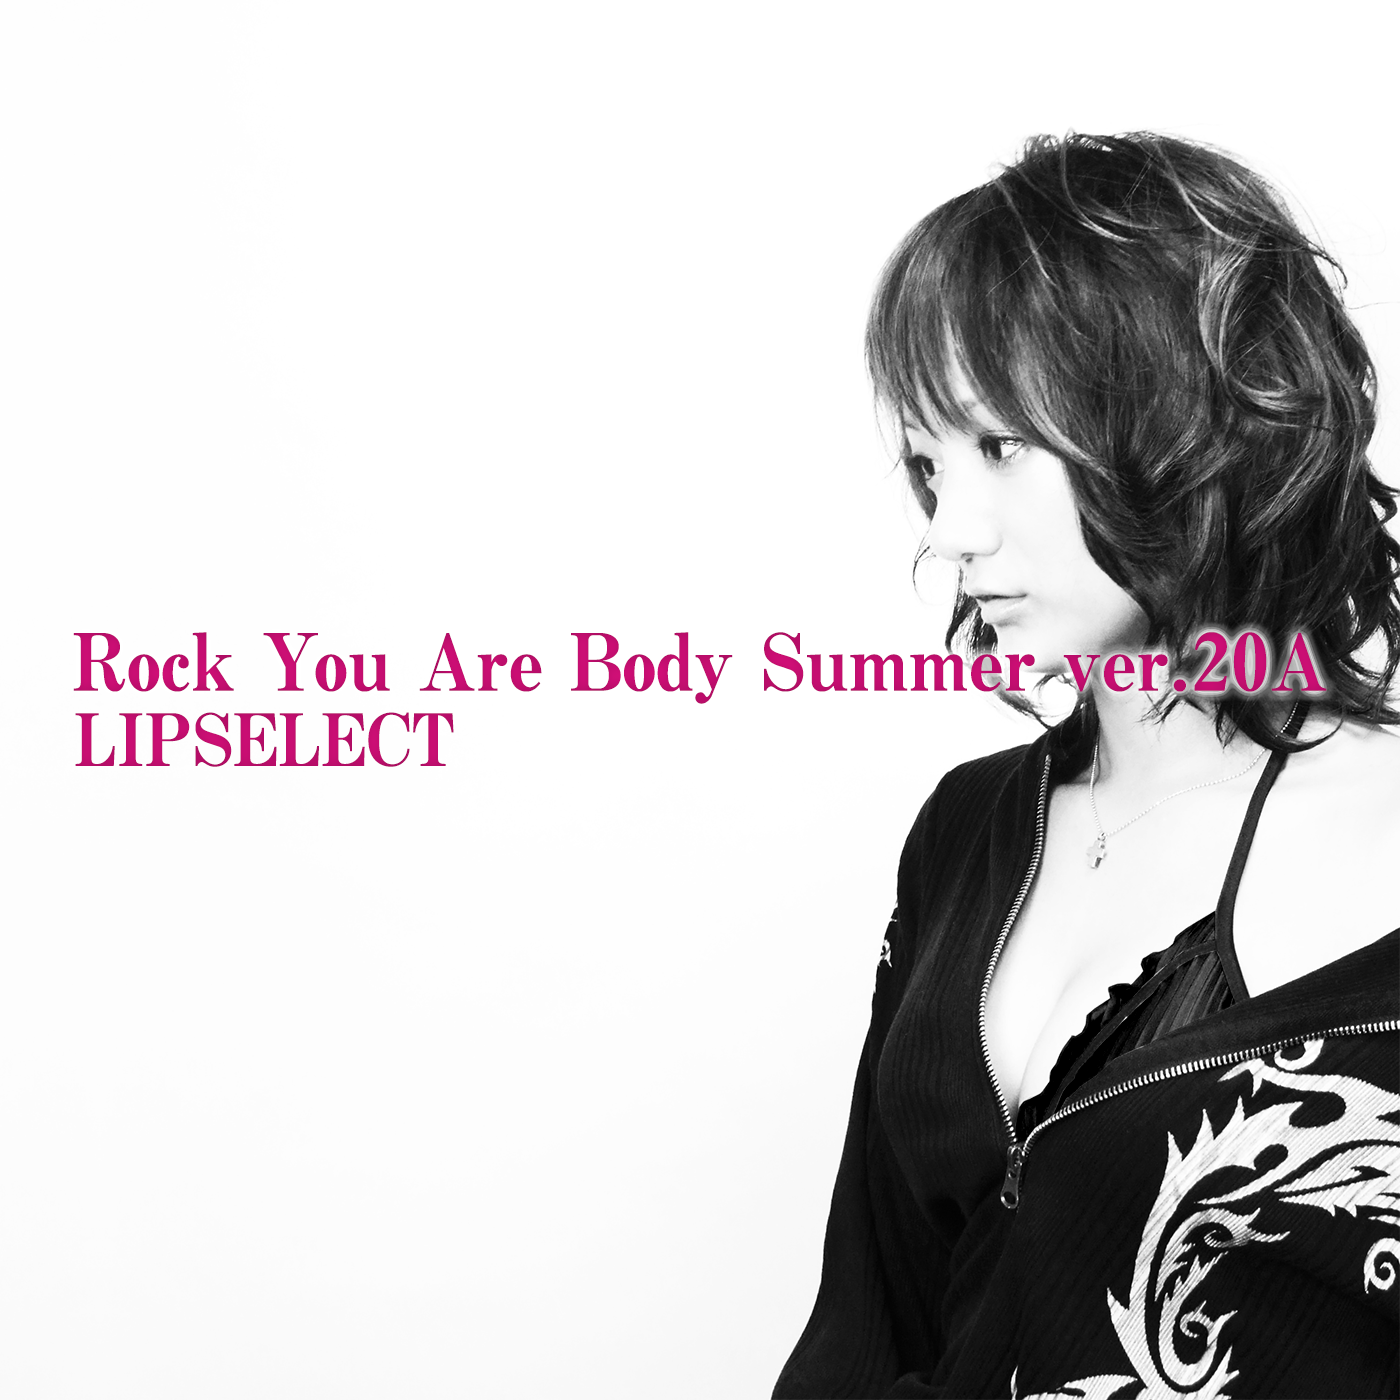 Rock You Are Body Summer